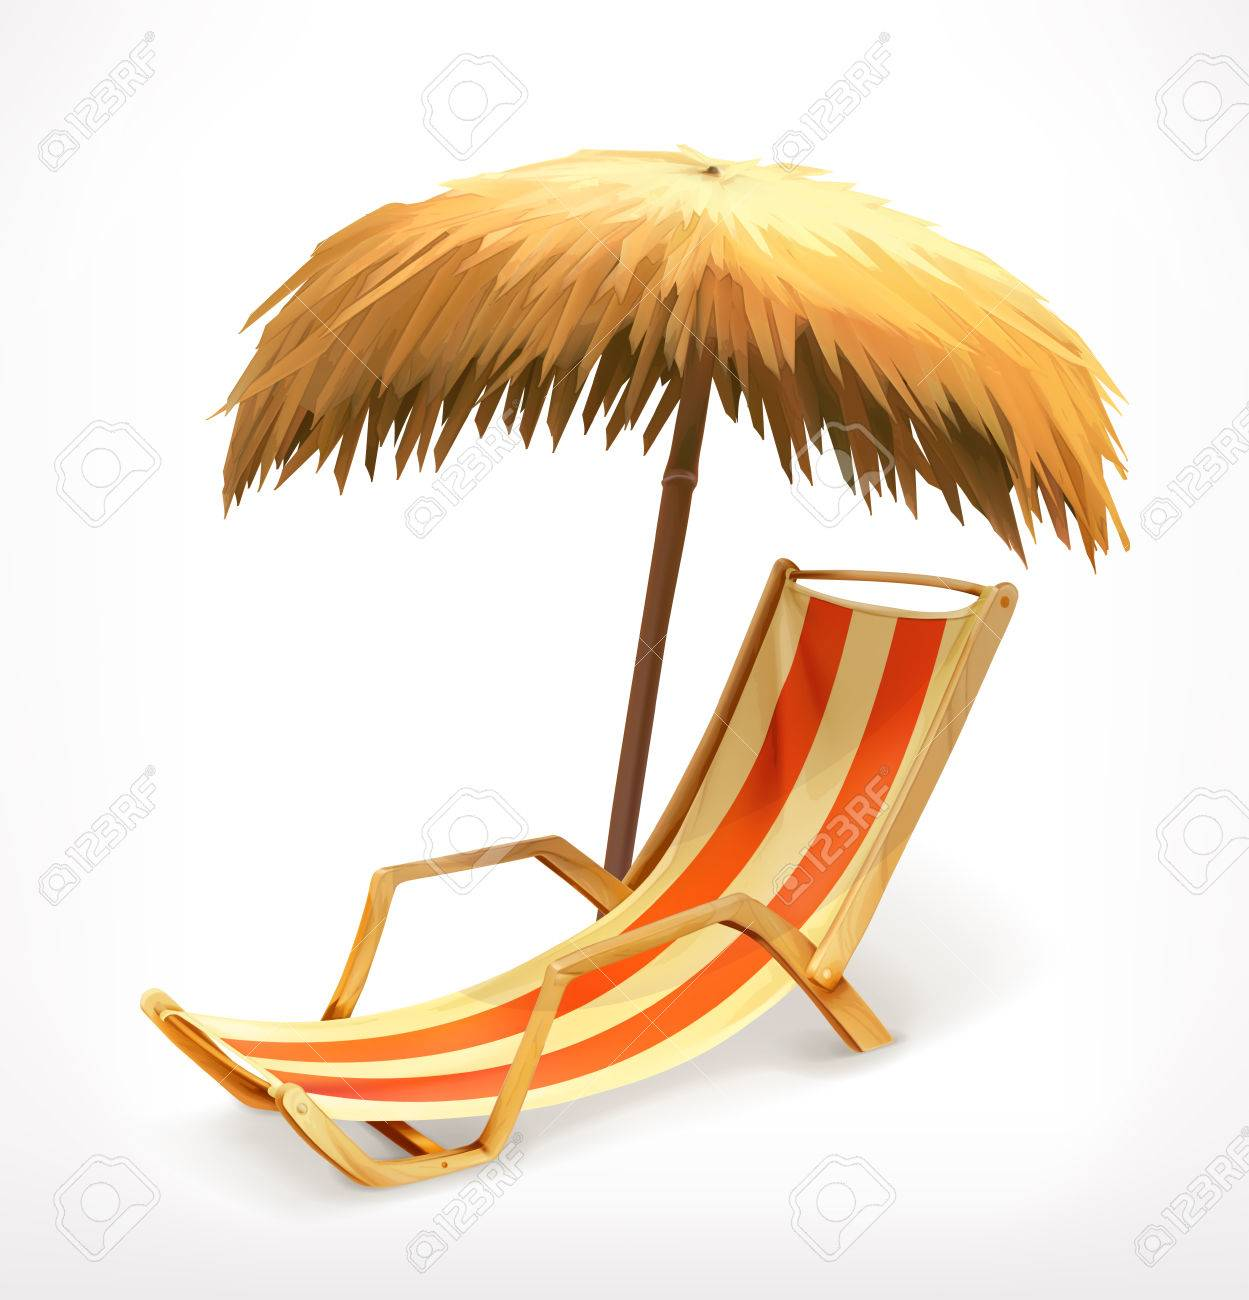 Beach umbrella and chair png - Download